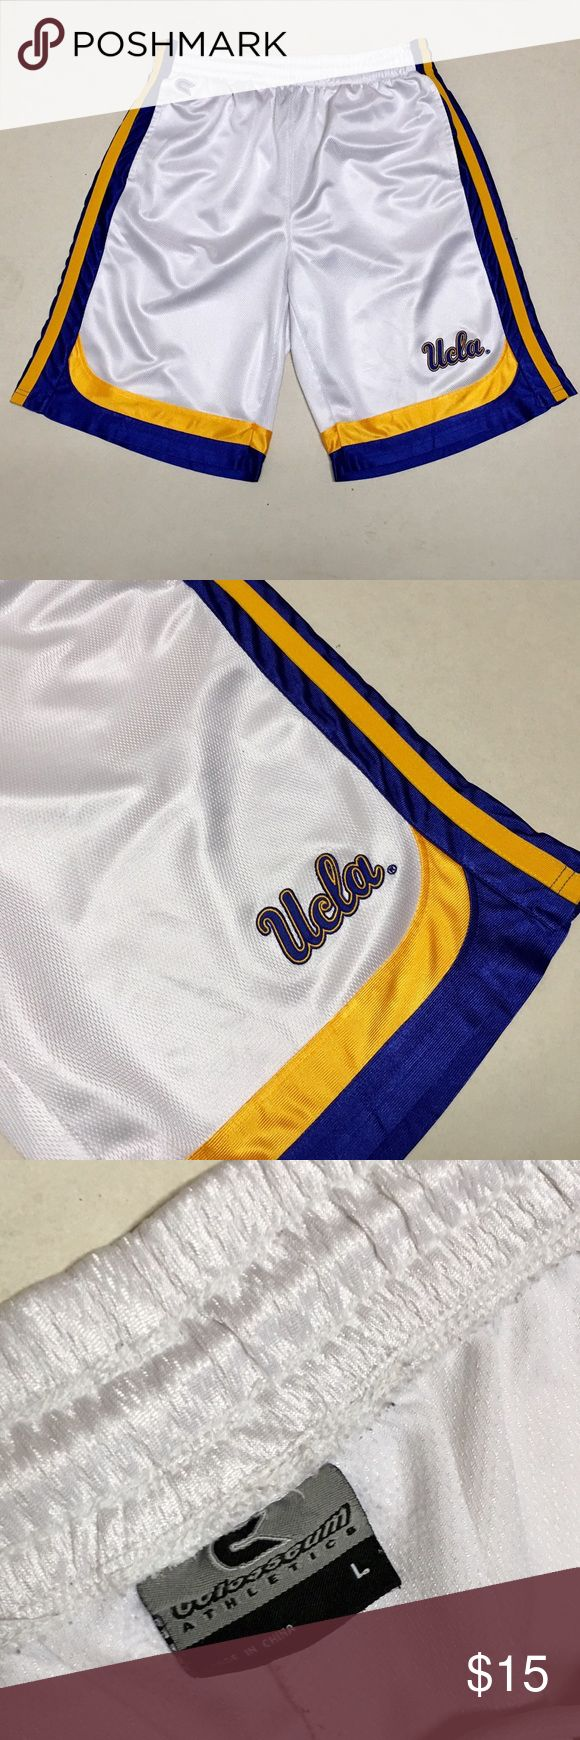 UCLA Bruins - Men's Basketball Shorts 🏀 UCLA Bruins  Basketball shorts   Men's Size Large   Draw string  Side pockets   Get them for March Madness!! 🏀 Colosseum Shorts Athletic